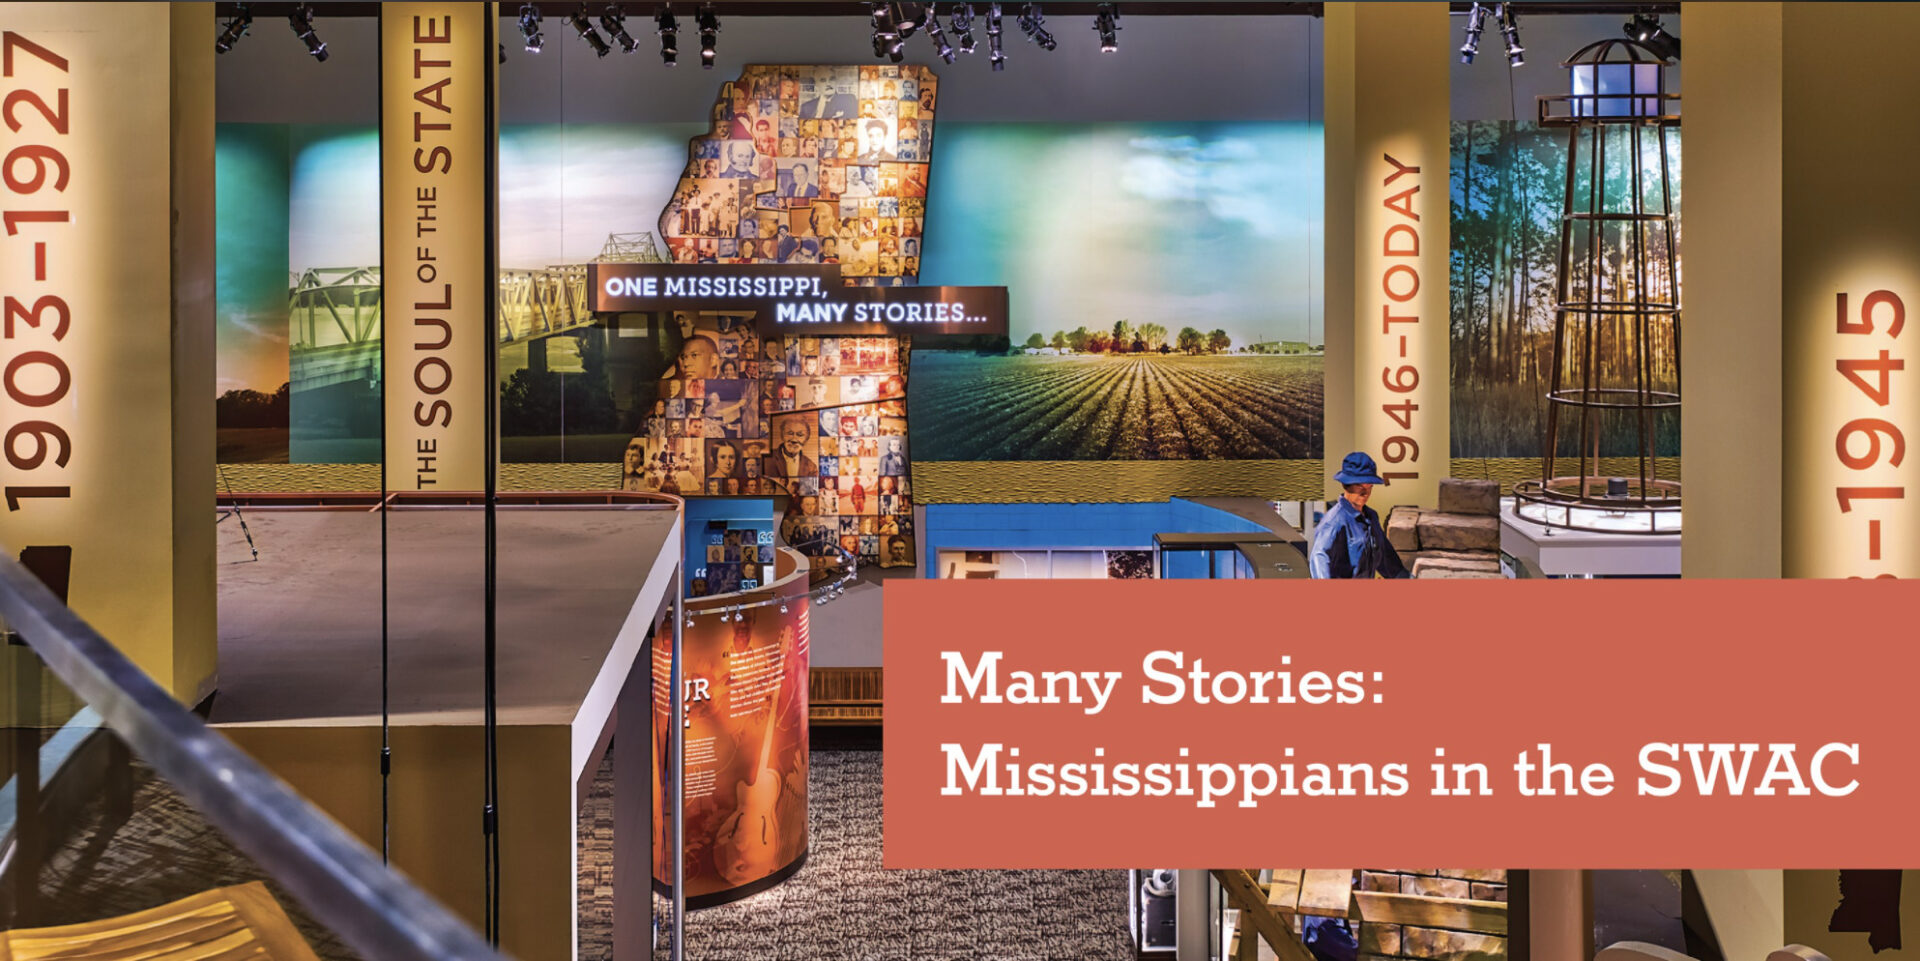 Many Stories Series: Mississippians in the SWAC